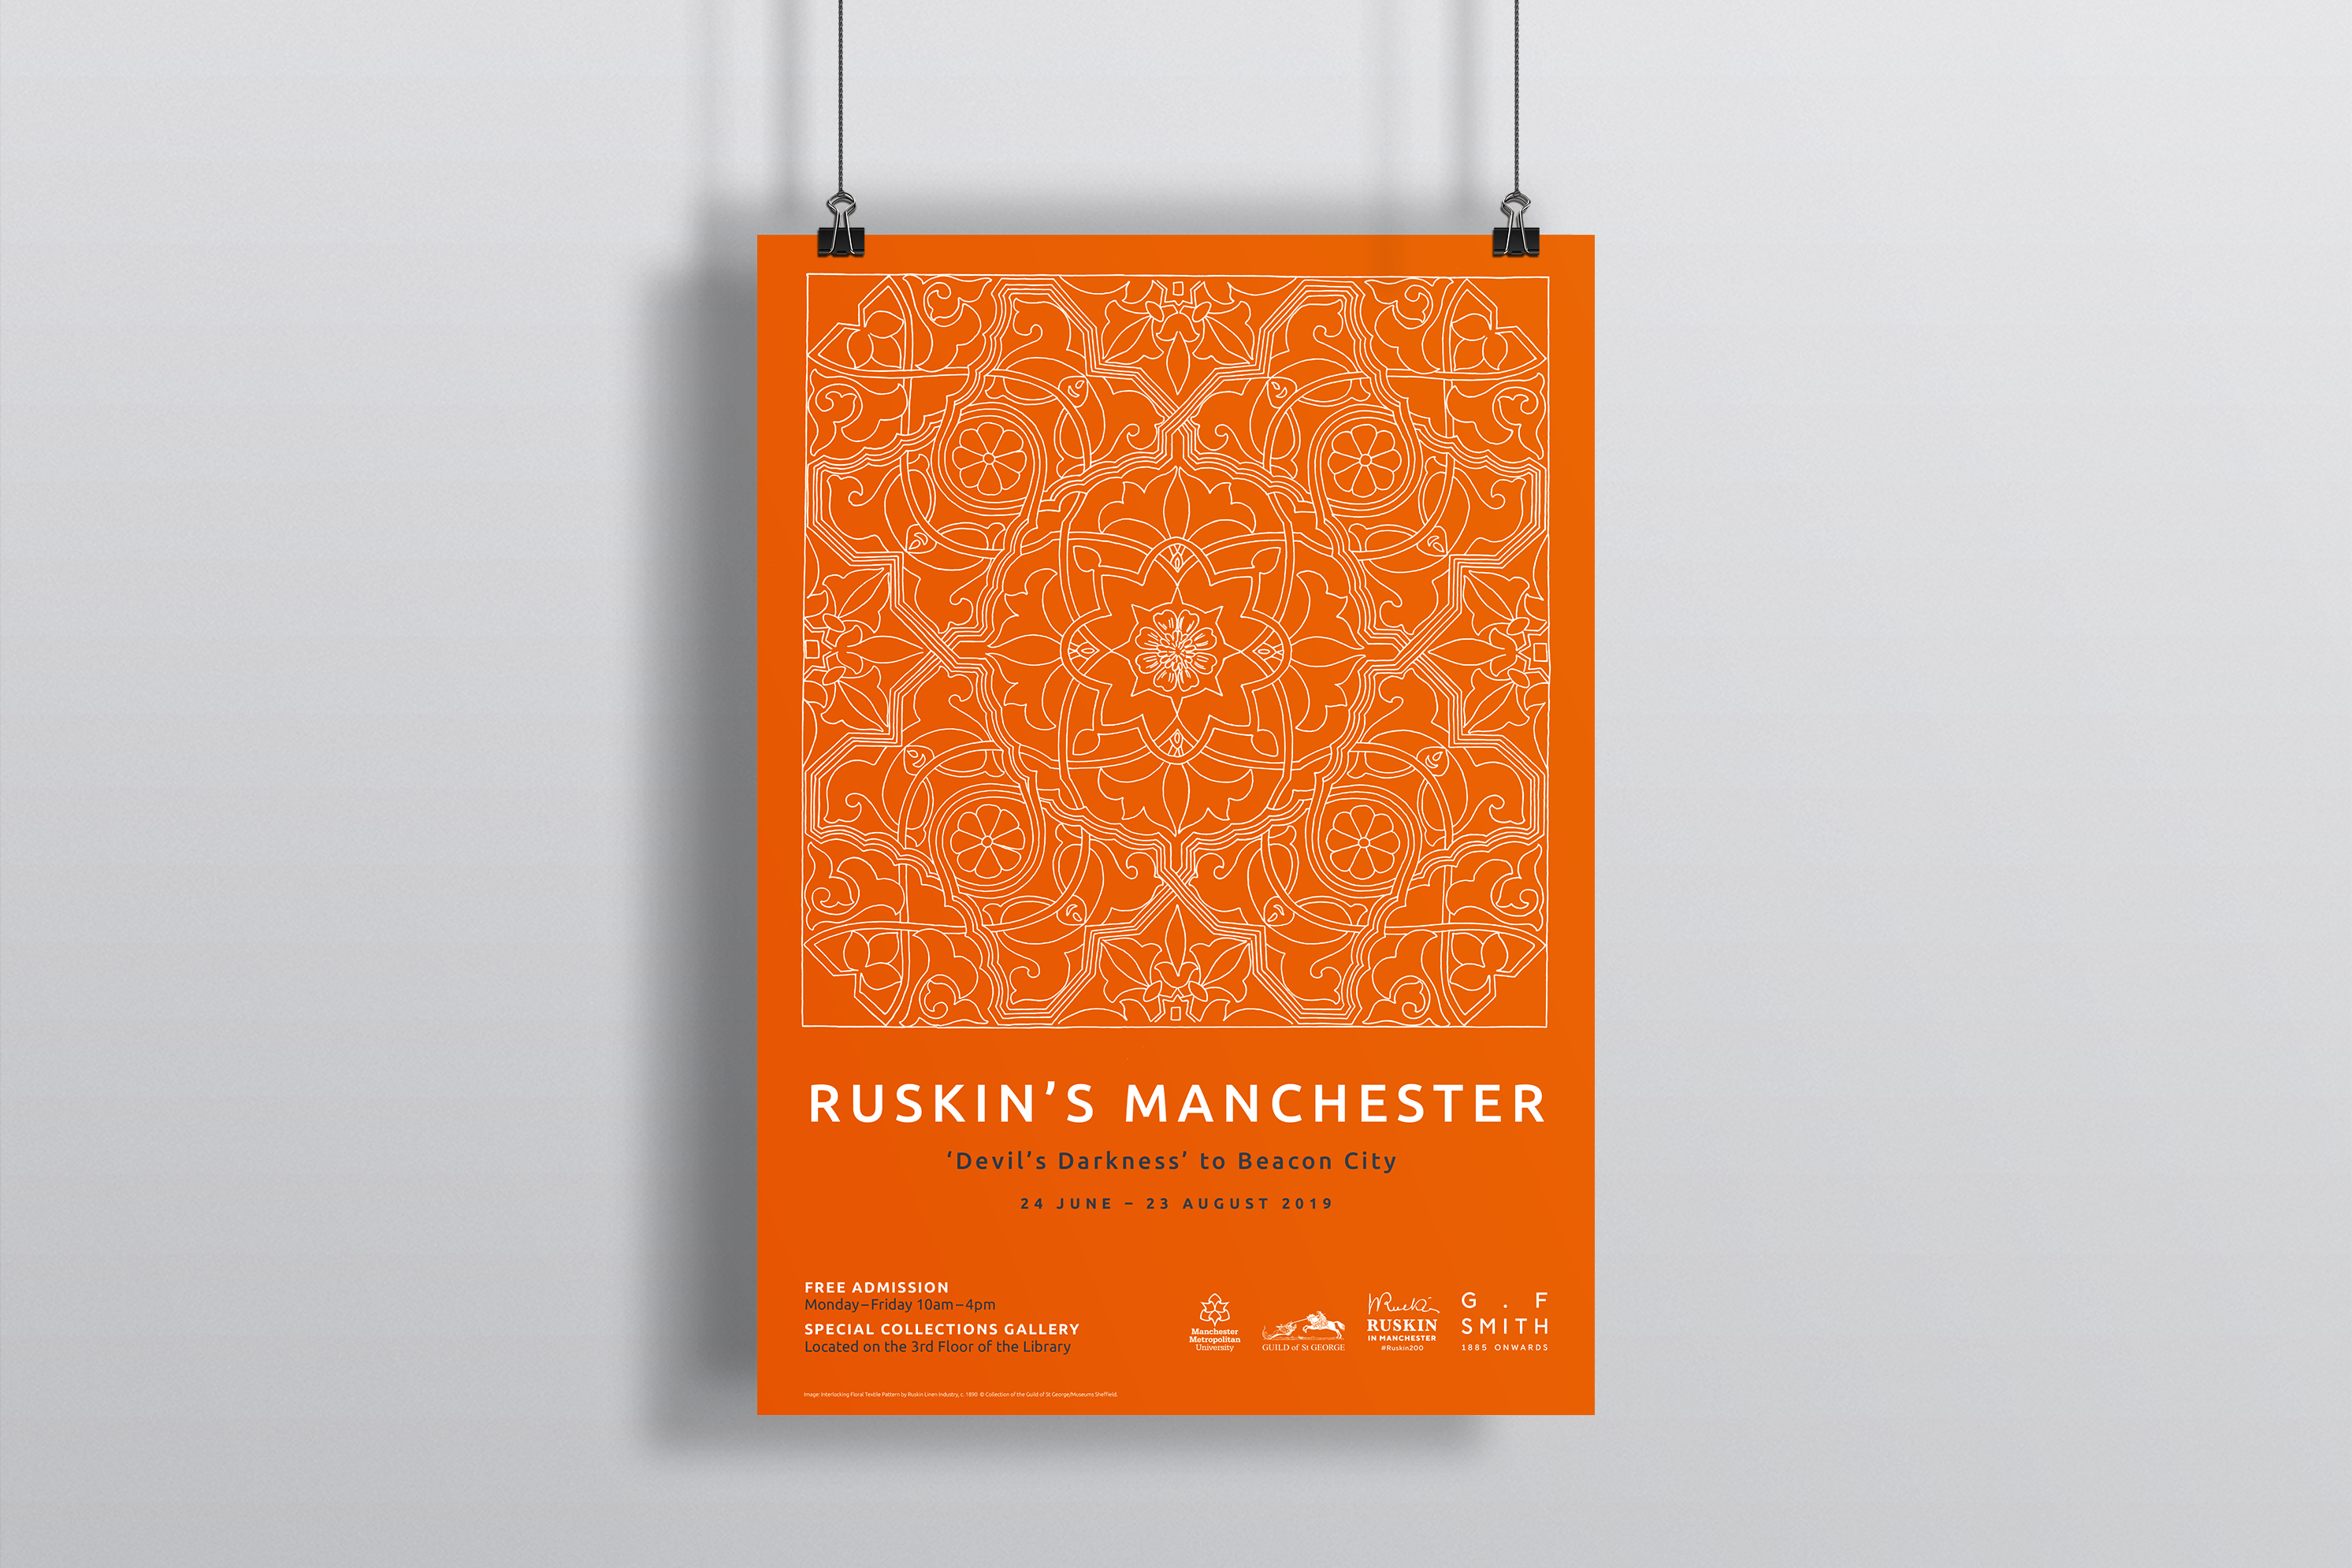 Orange poster with white pattern advertising ruskin's manchester exhibition, help up with string and bulldog clips